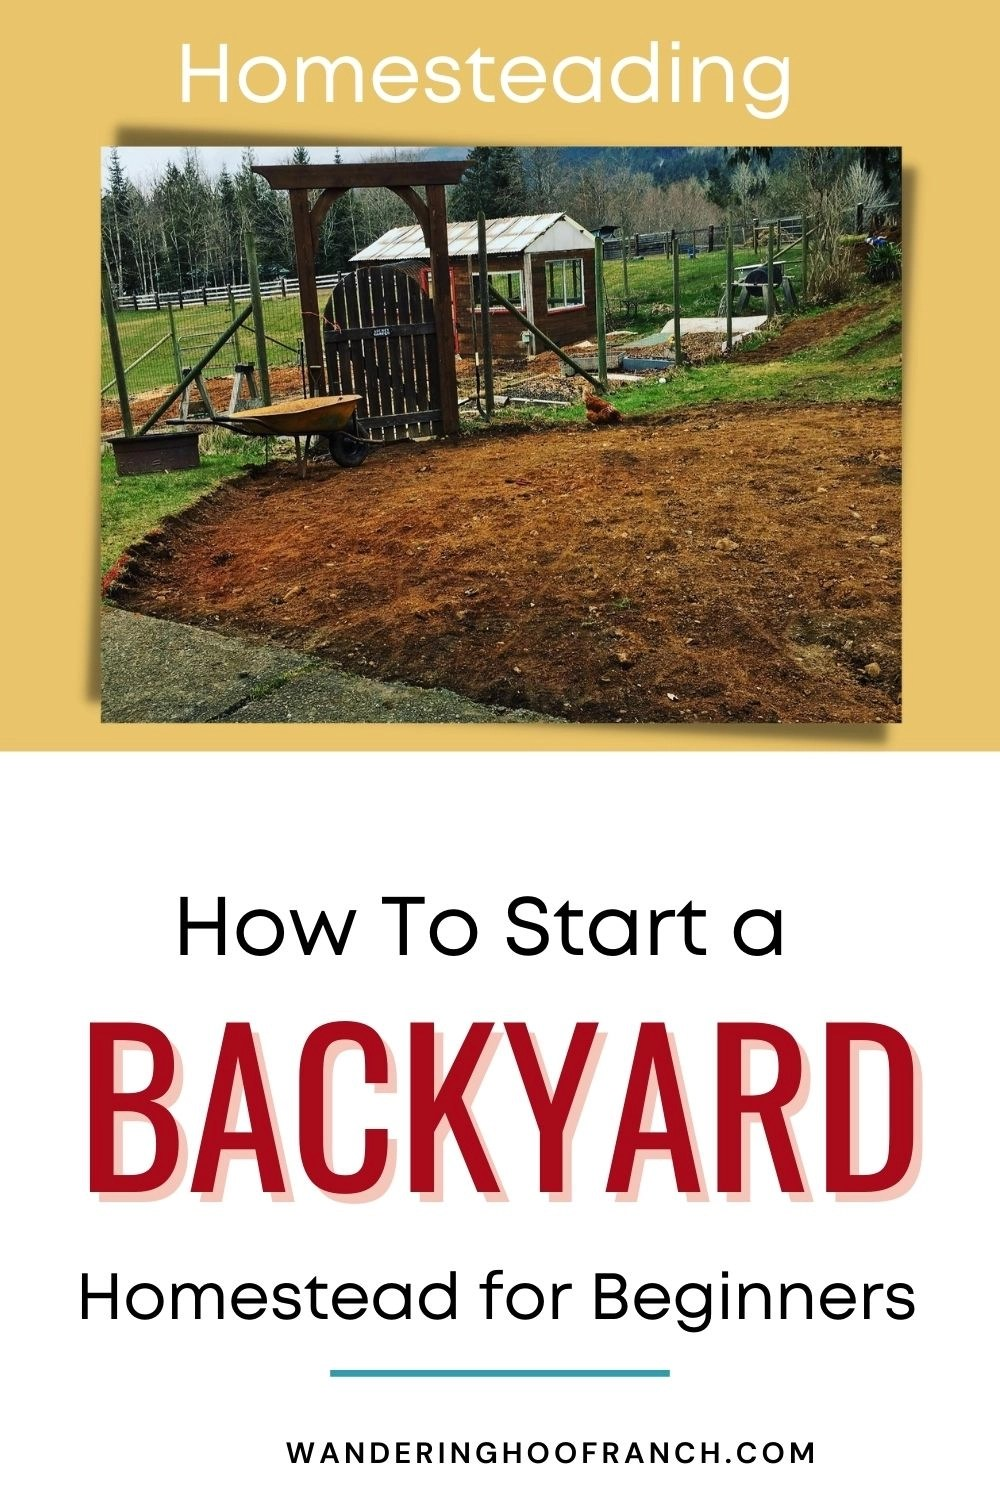 how to start a backyard homestead pin image